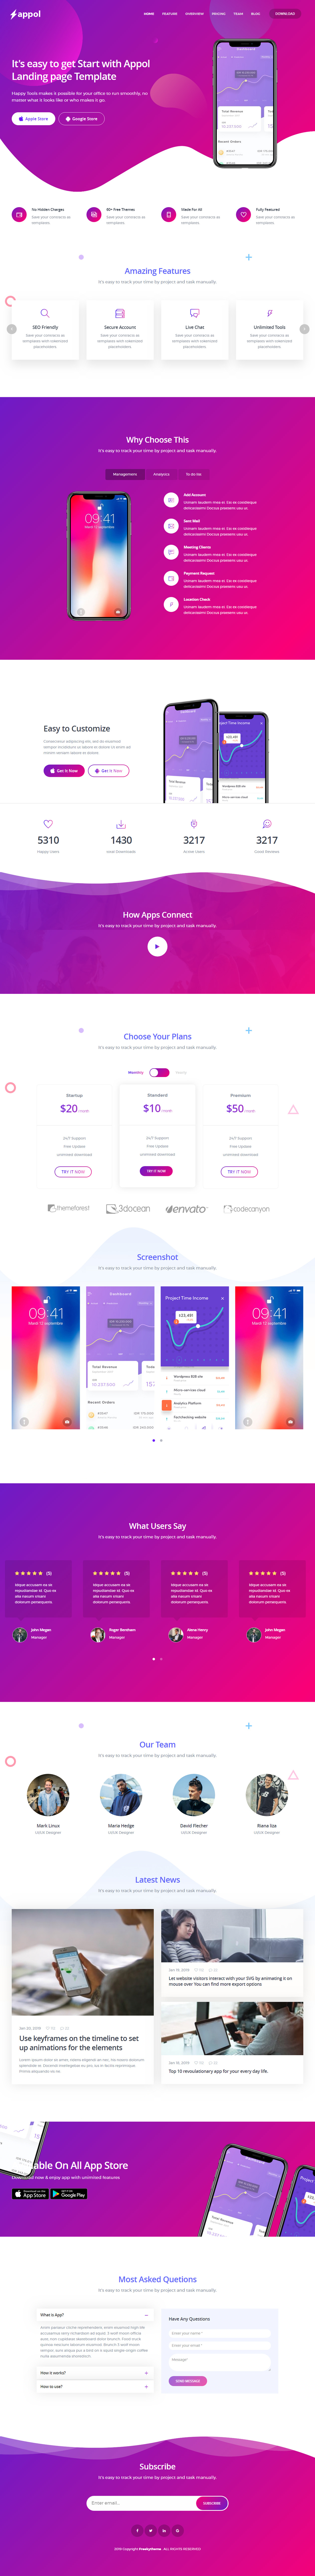 30 Best HTML5 Mobile App Templates in 2019 - Responsive Miracle